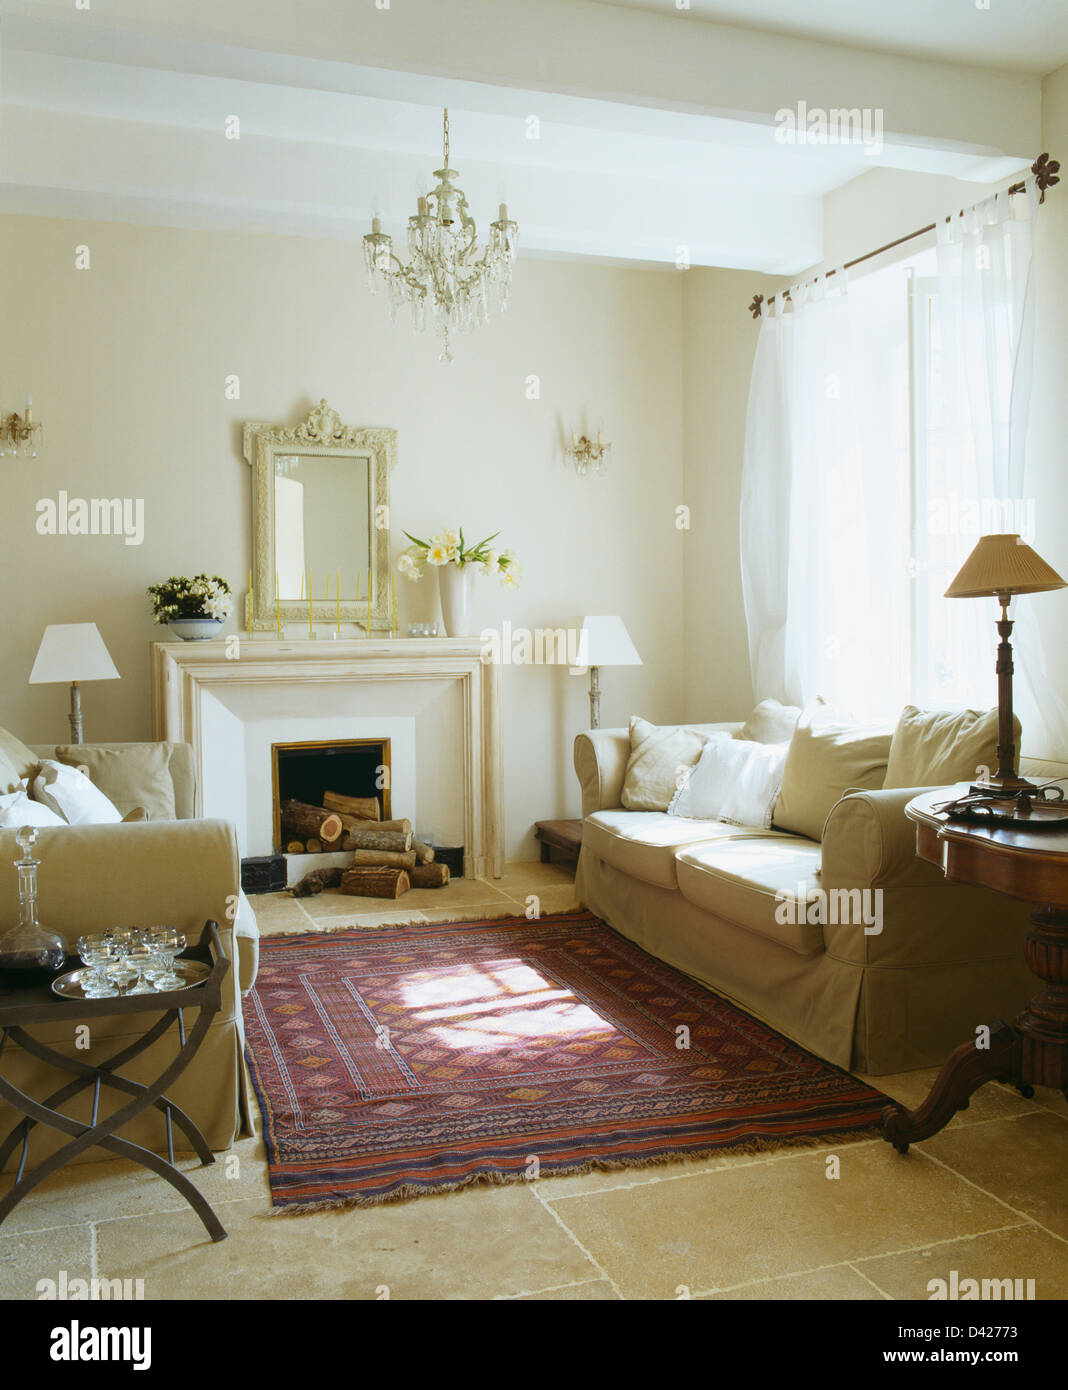 Cream Sofas And Voile Curtains In White French Living Room With Oriental  Rug On Stone Flooring